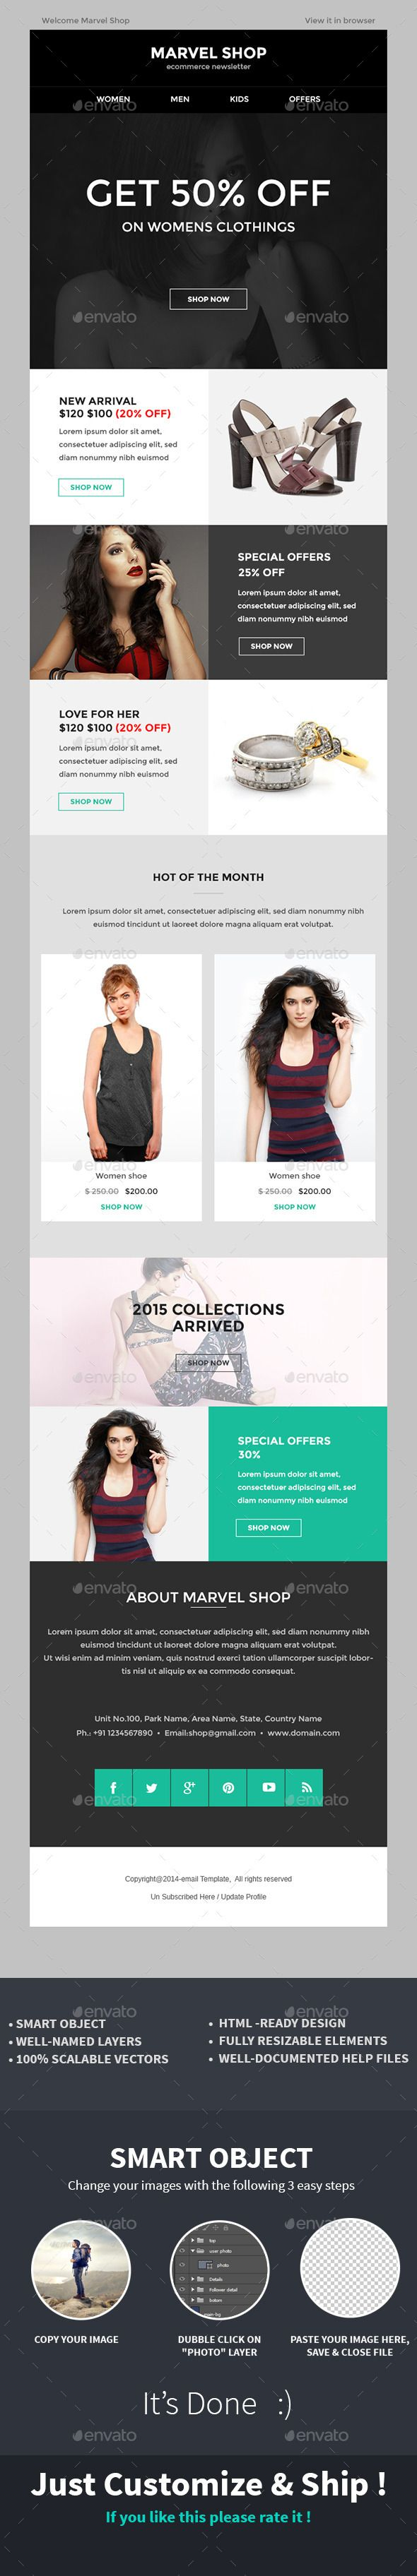 e commerce special offer newsletter psd template newsletter e commerce special offer newsletter template psd here